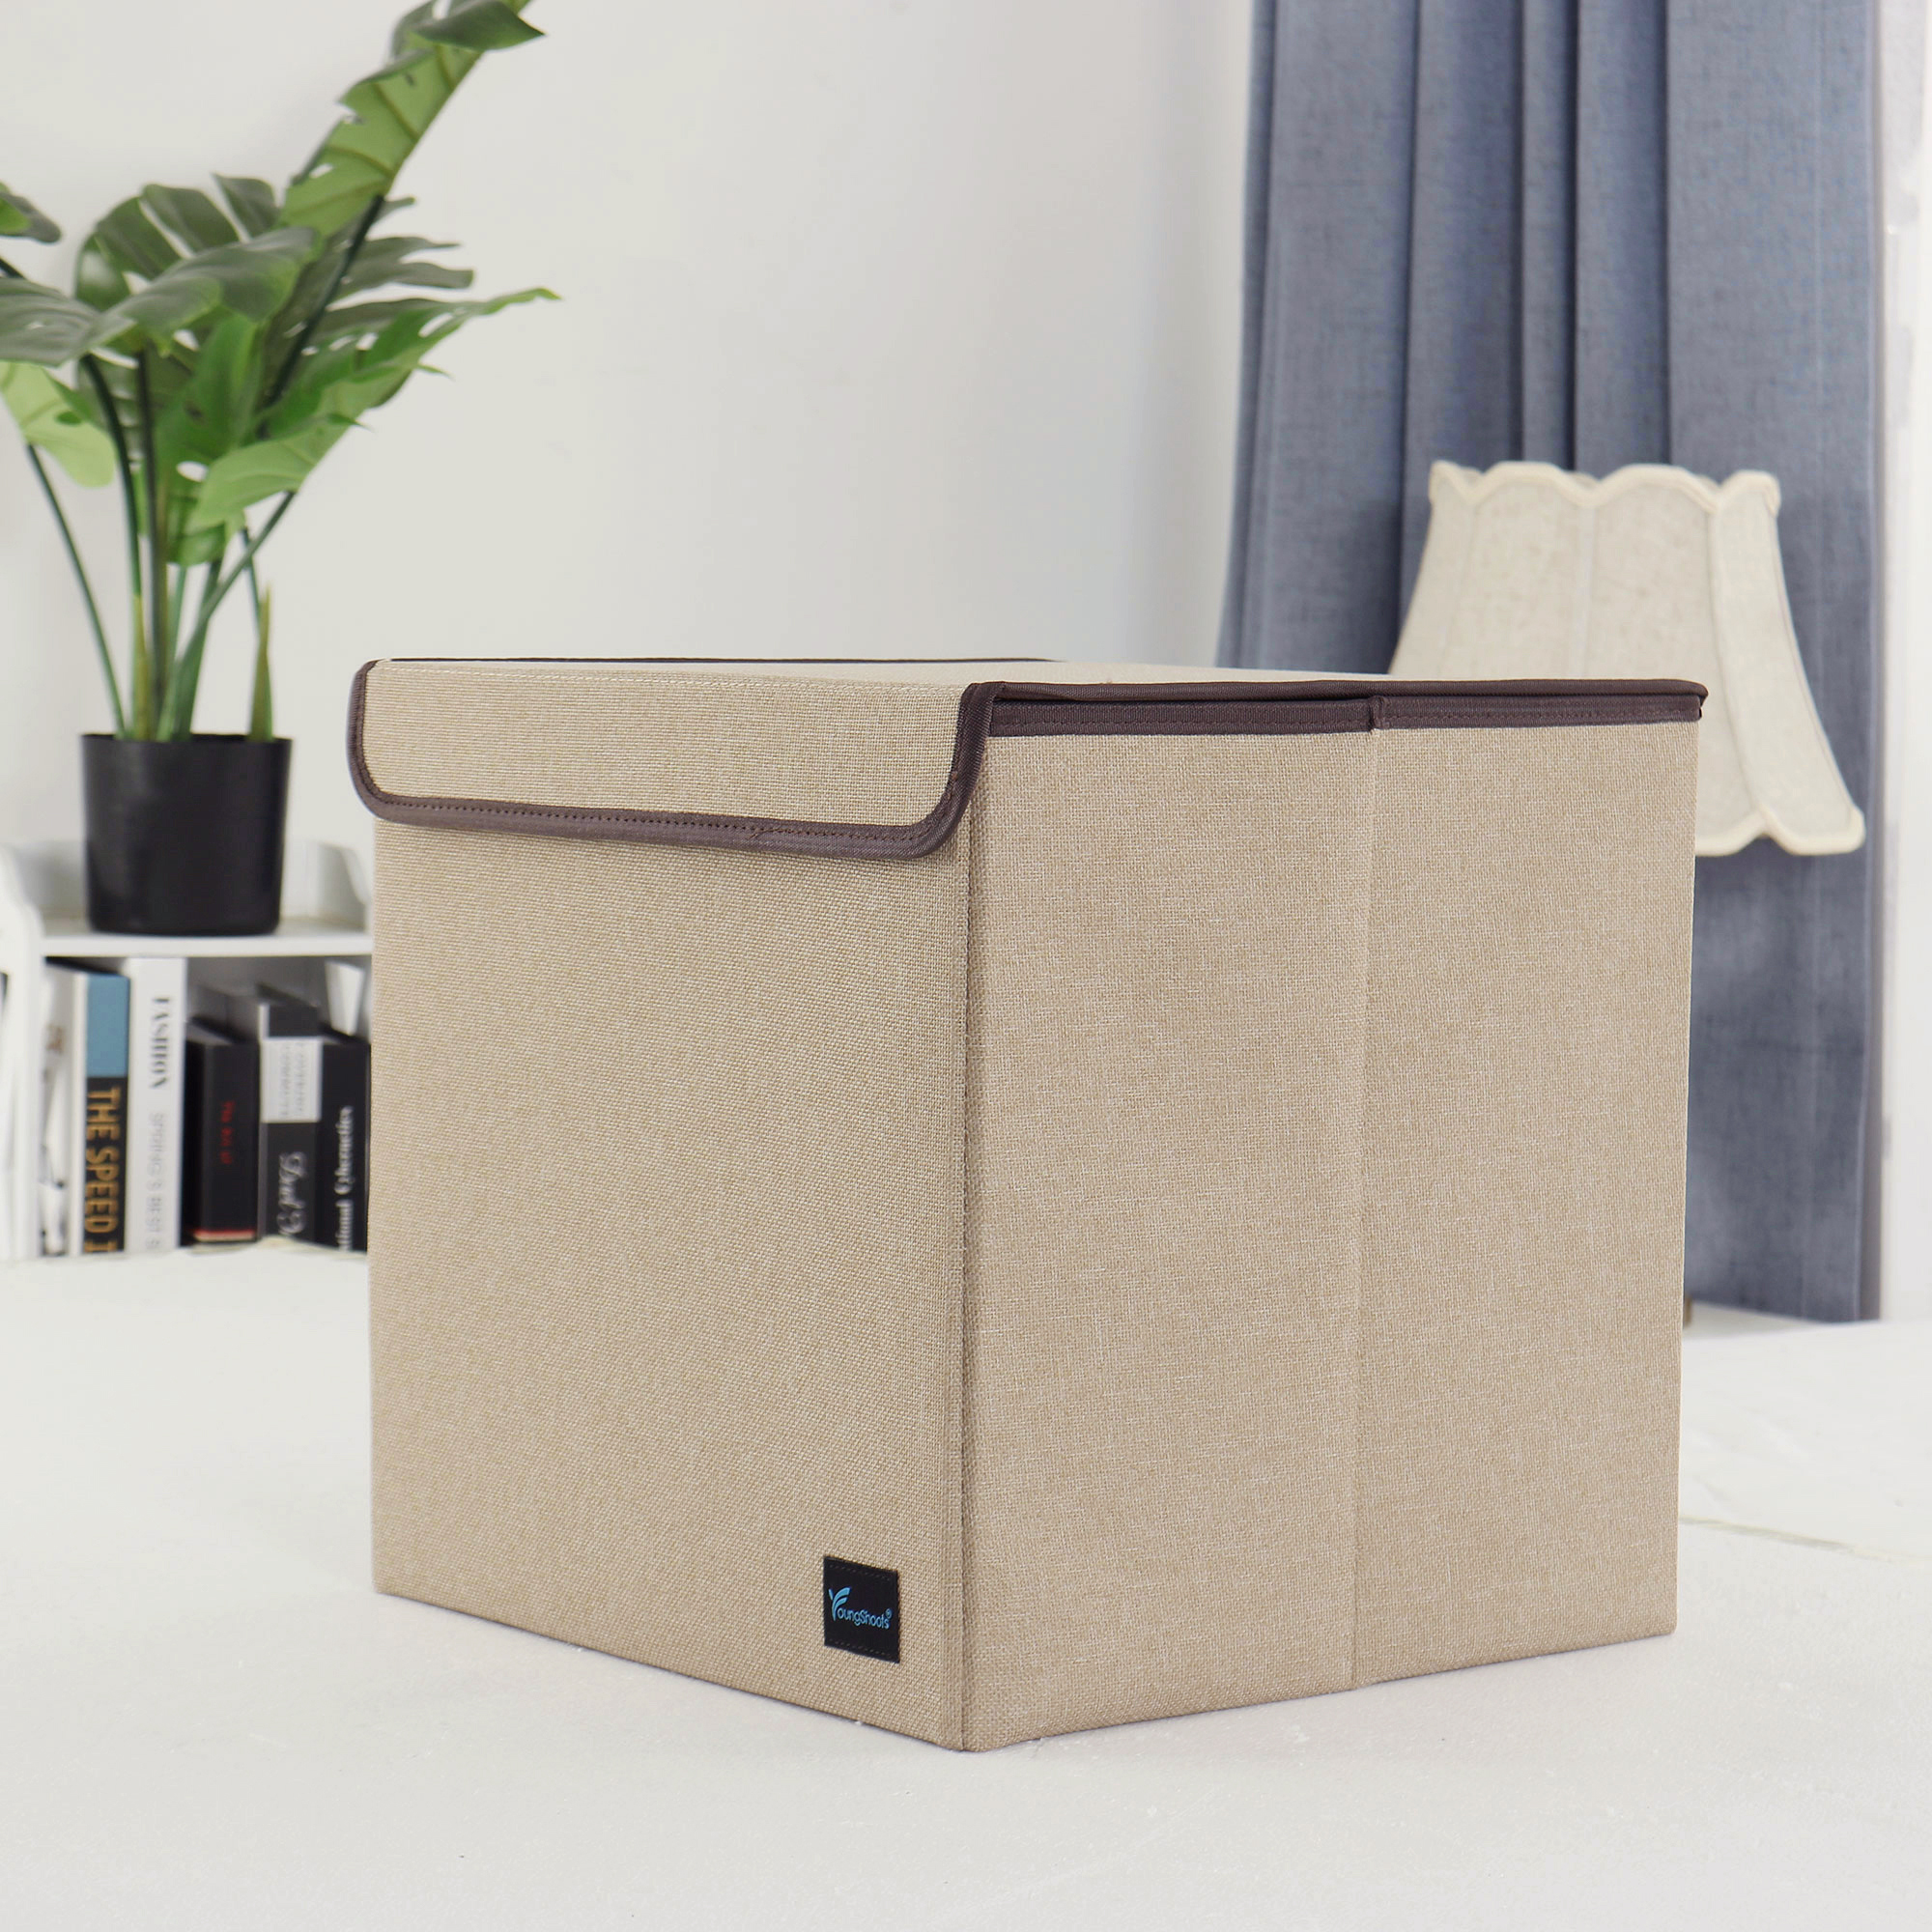 13'' Foldable Fabric Storage Basket Cube Bin Toy Organizer with Lid Khaki